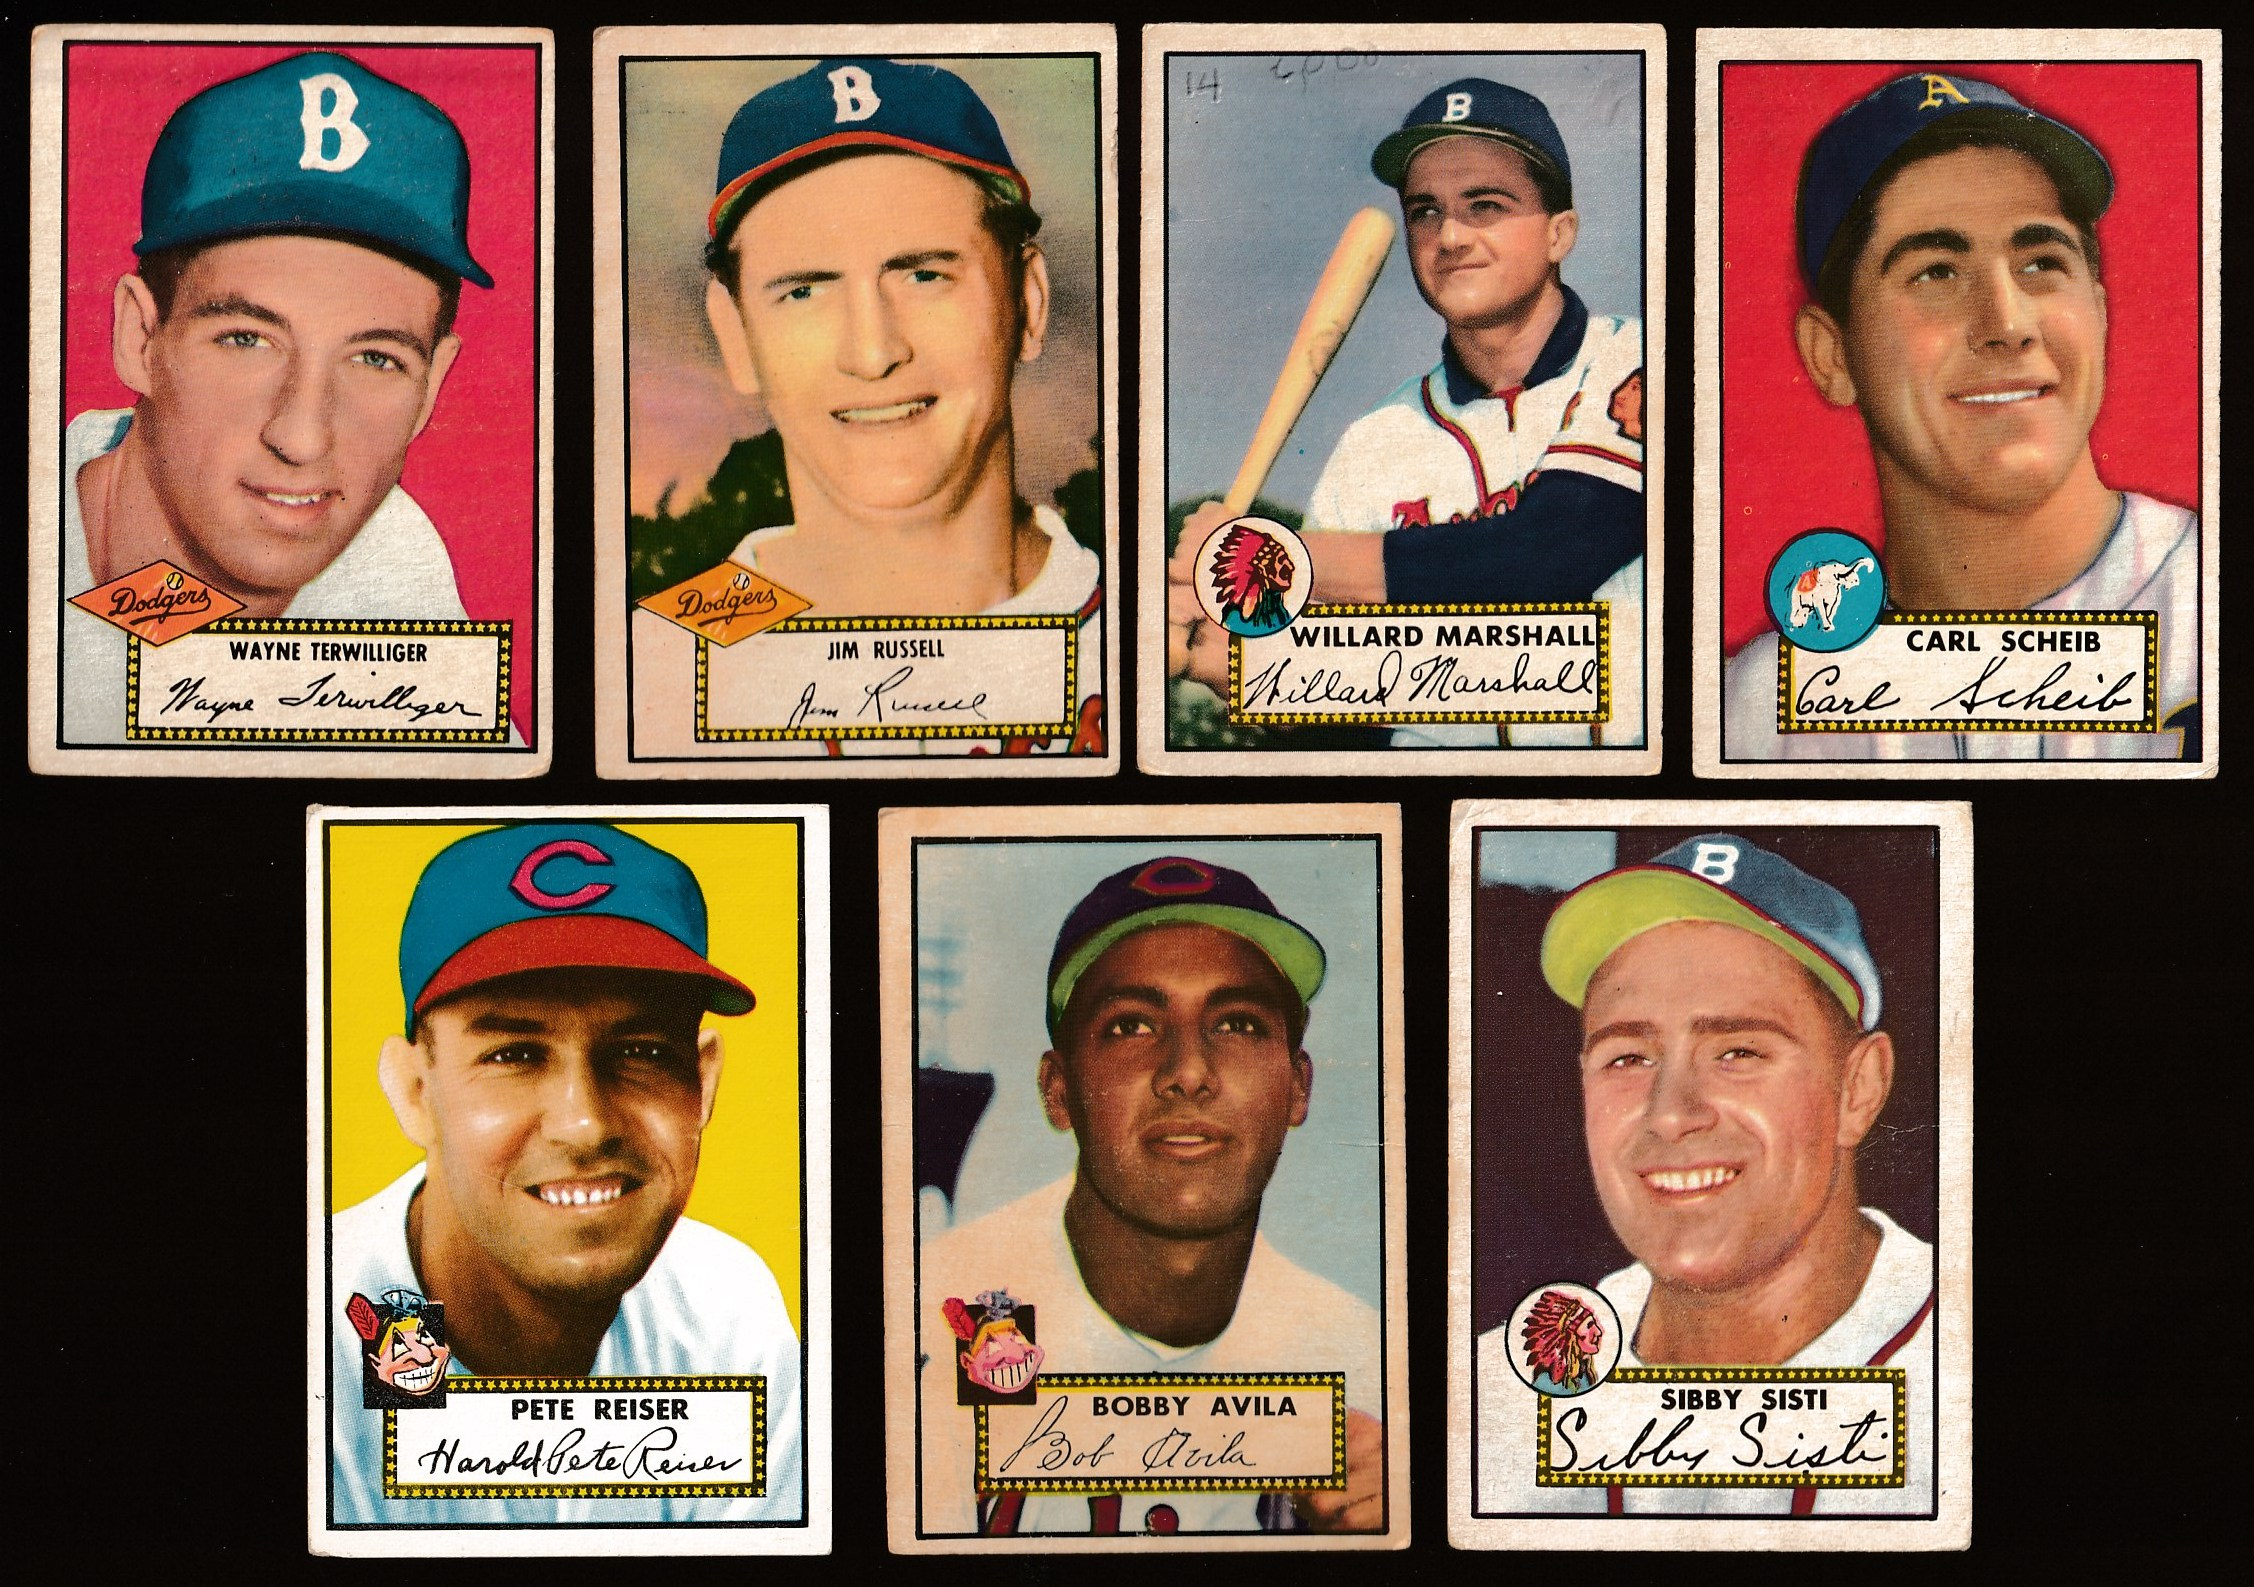 1952 Topps #293 Sibby Sisti SHORT PRINT (Boston Braves) Baseball cards value